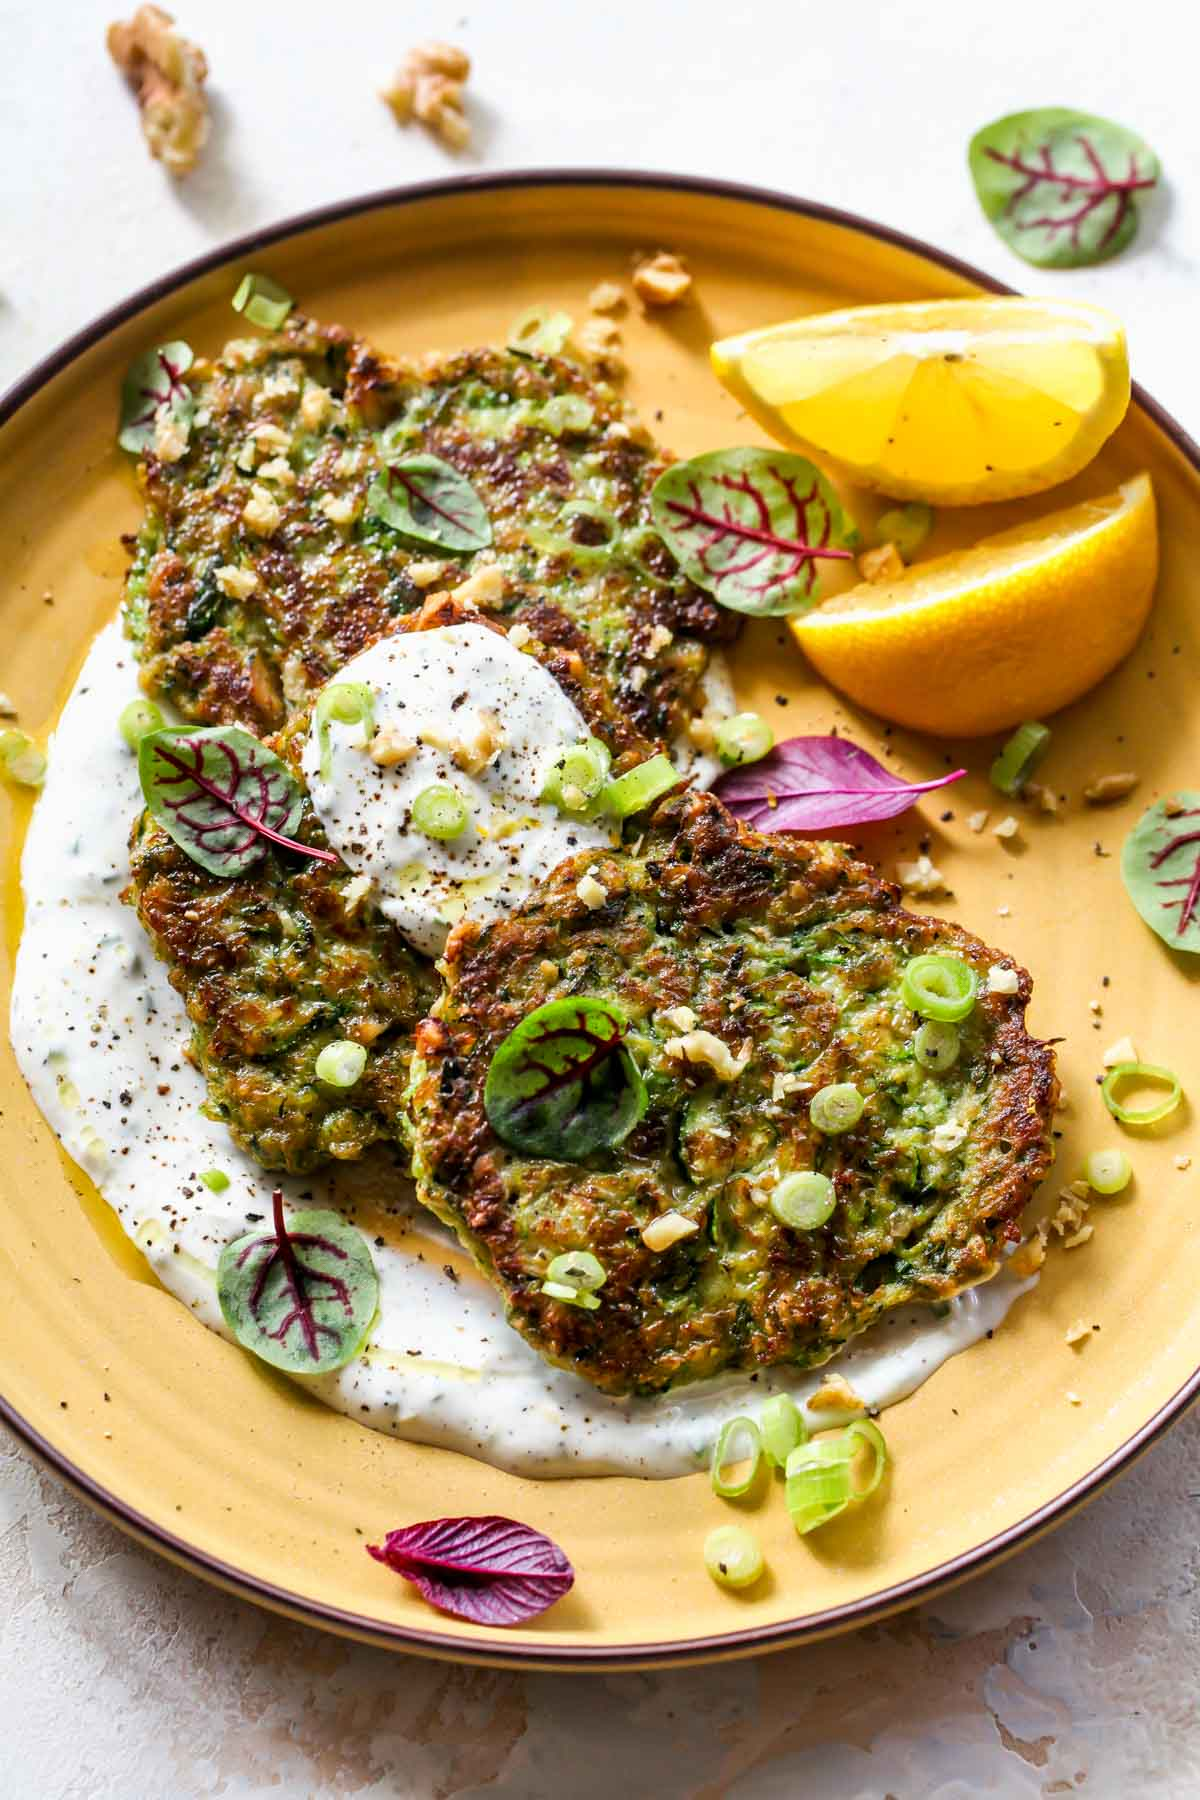 Zucchini fritters arranged on a plate with garlic sauce and lemons